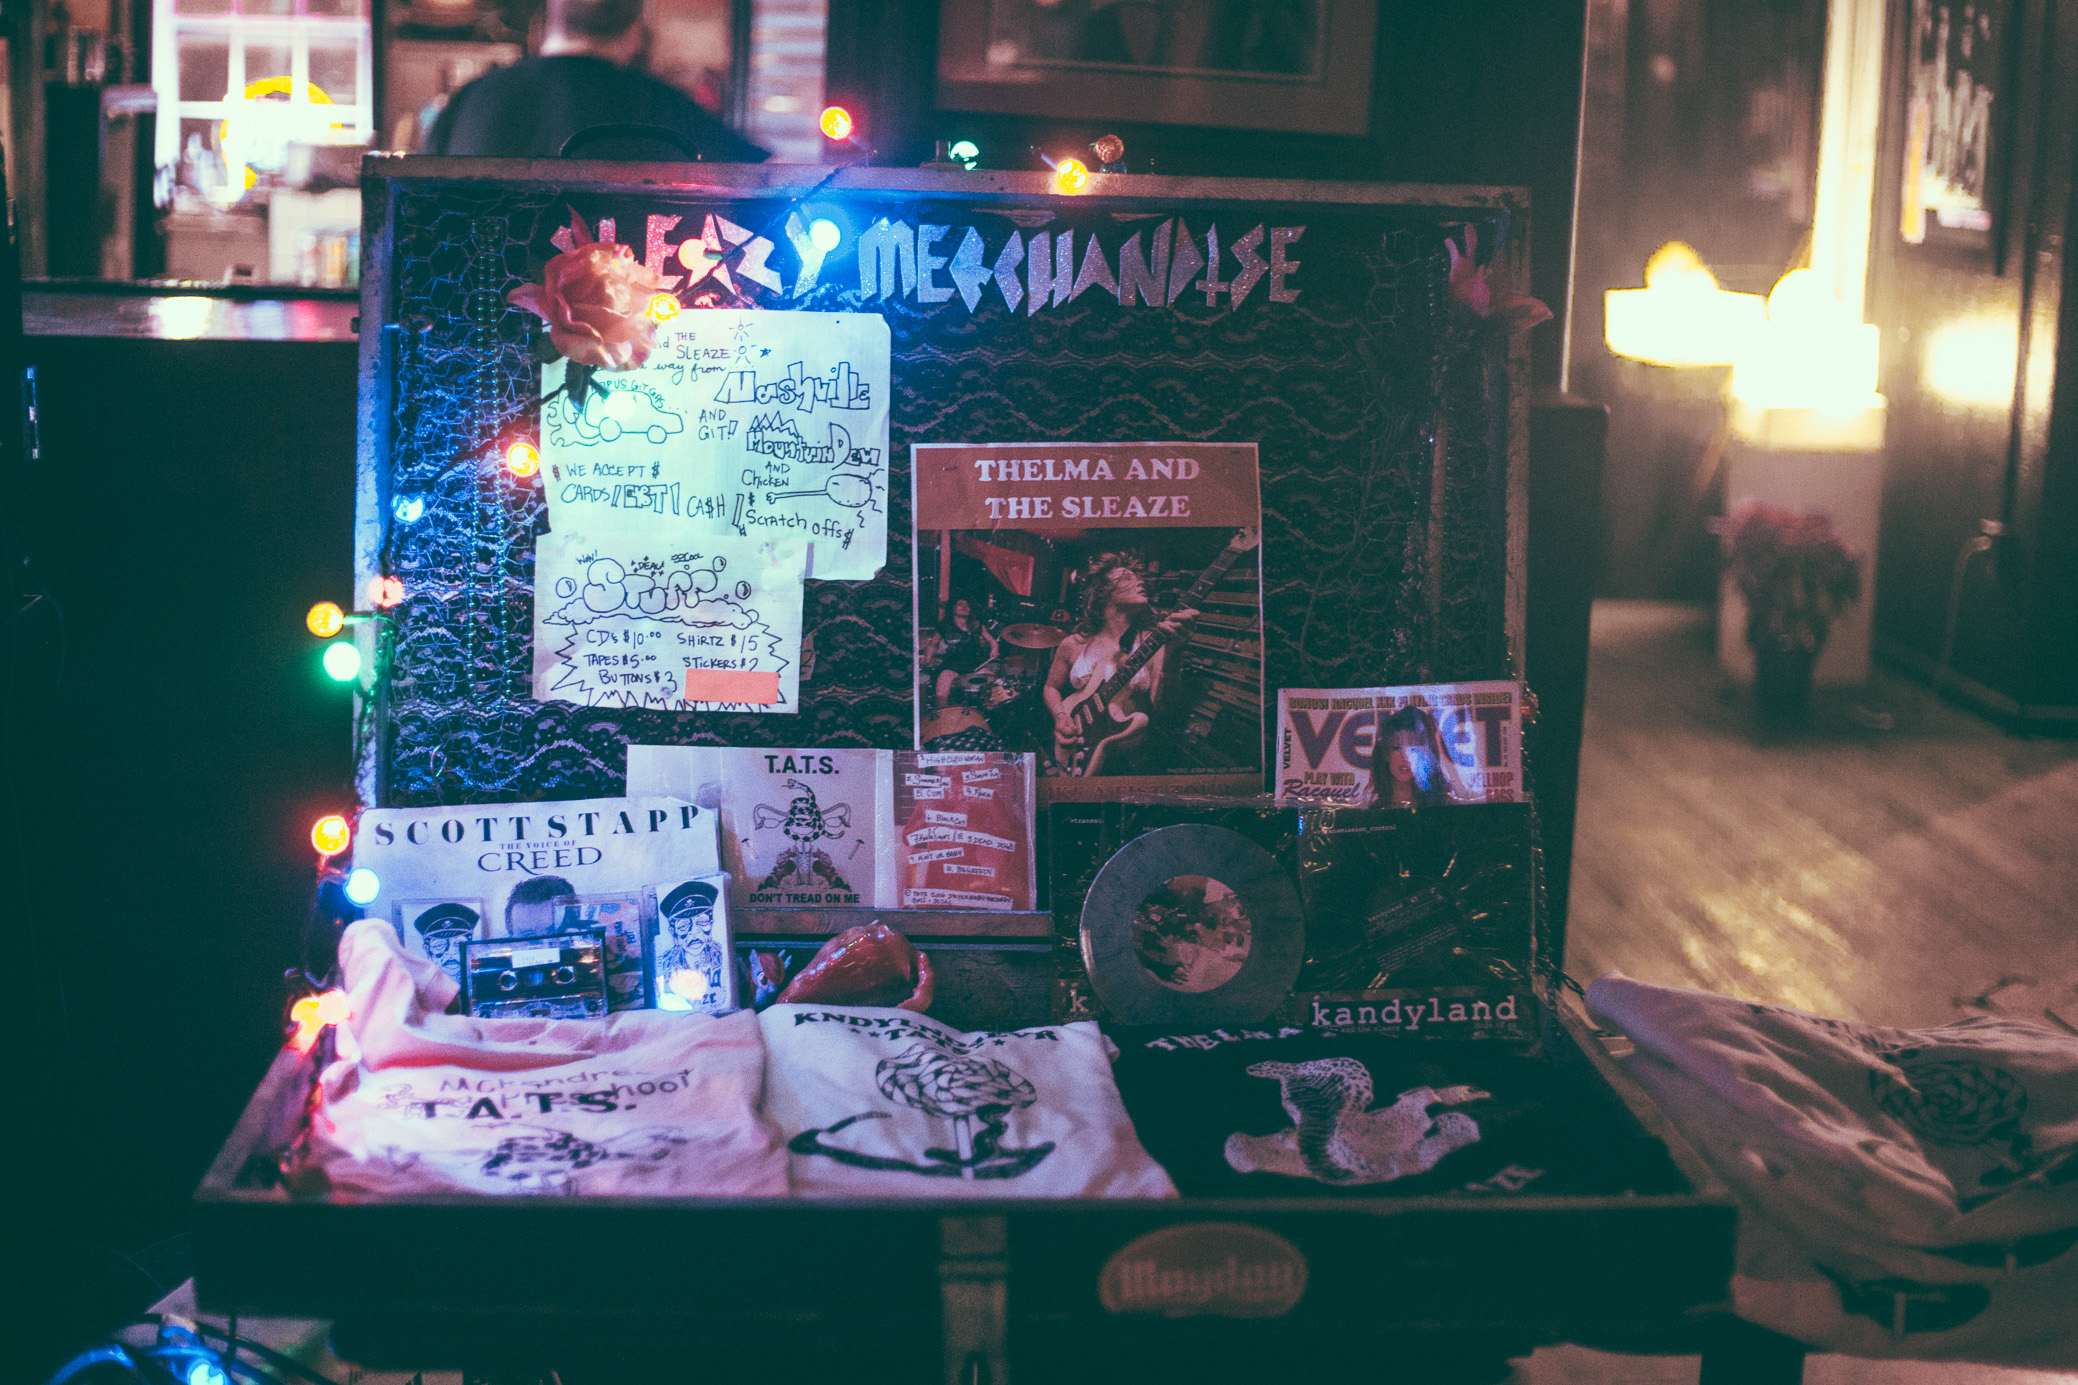 The merch table at the show by Thelma and The Sleaze at The Syndicate Lounge in Birmingham, Alabama on January 12th, 2017. / DSmithScenes